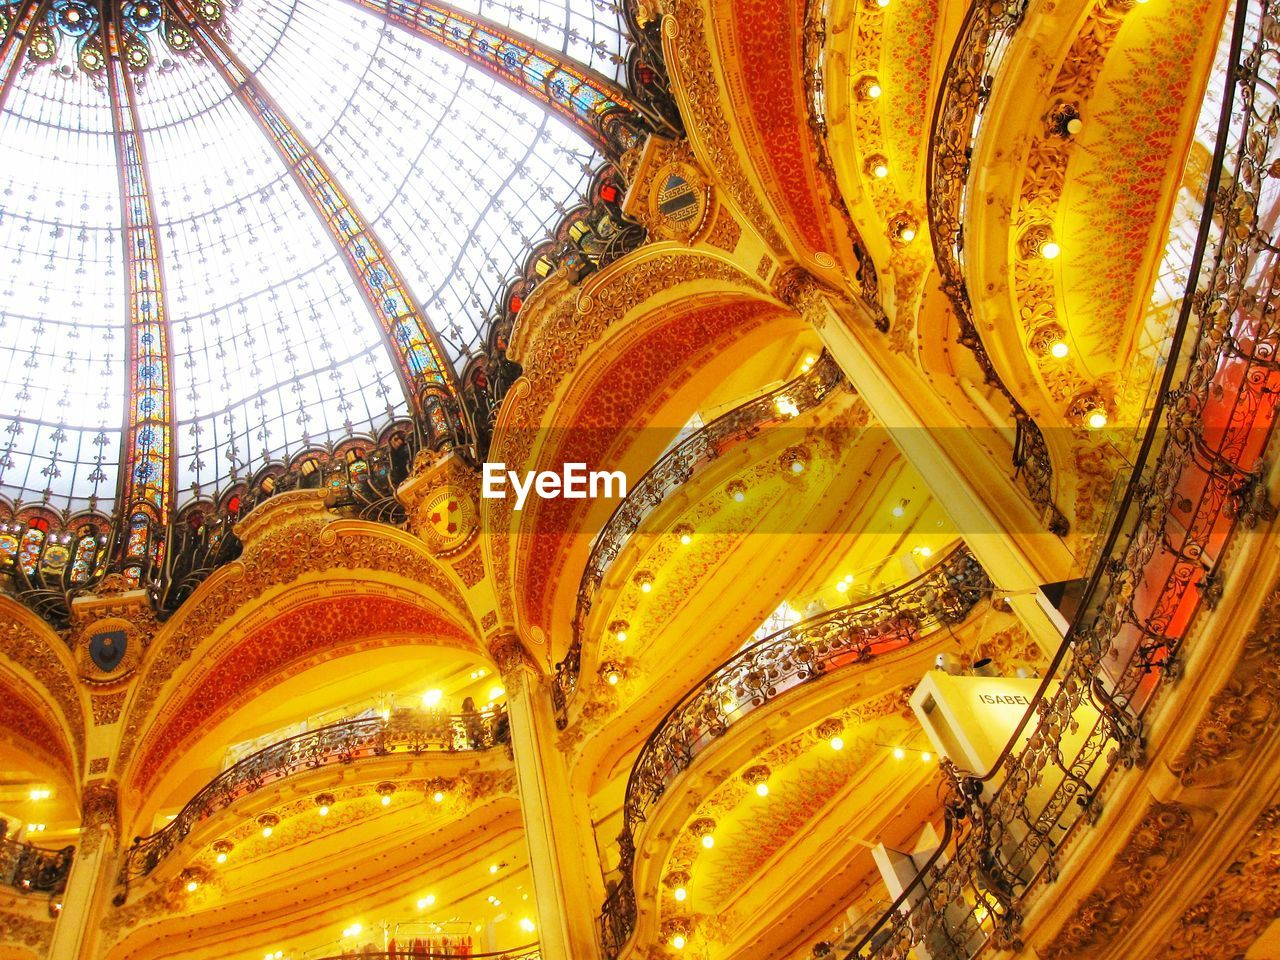 low angle view, ceiling, architecture, built structure, indoors, religion, illuminated, no people, lighting equipment, place of worship, building, belief, pattern, spirituality, design, gold colored, city, travel destinations, ornate, directly below, luxury, architecture and art